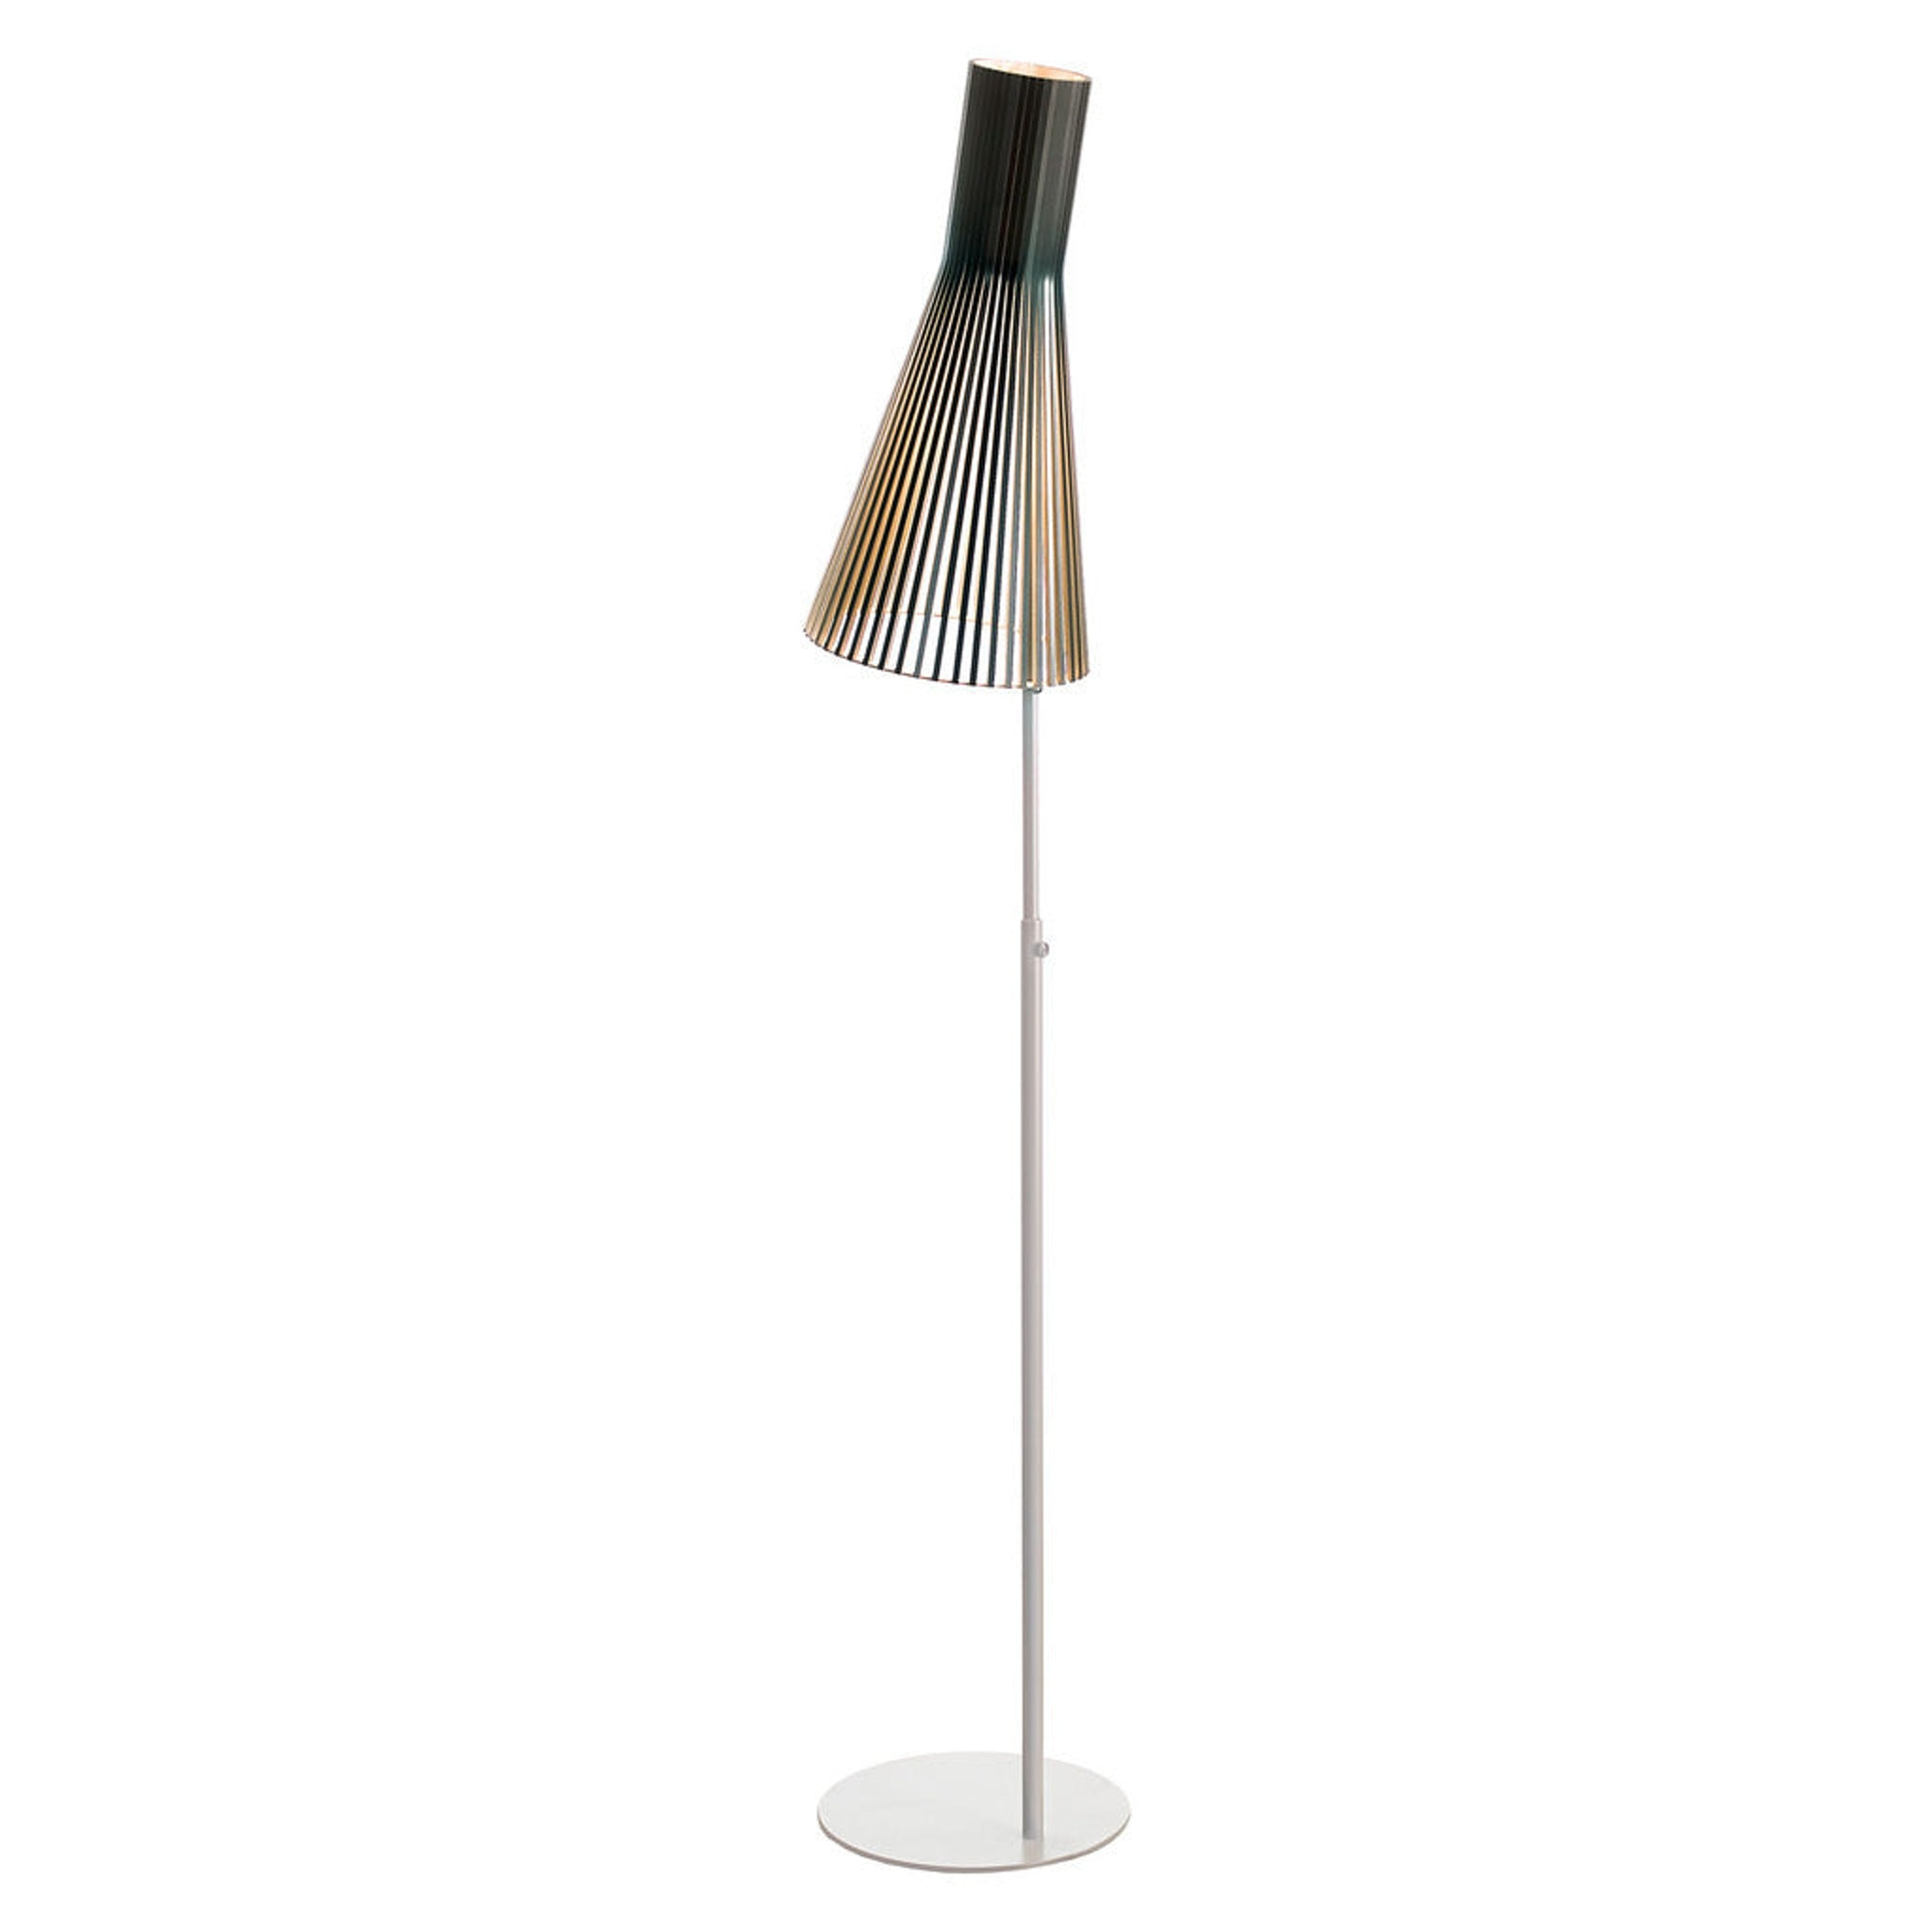 Secto 4210 Floor Lamp by Secto Design